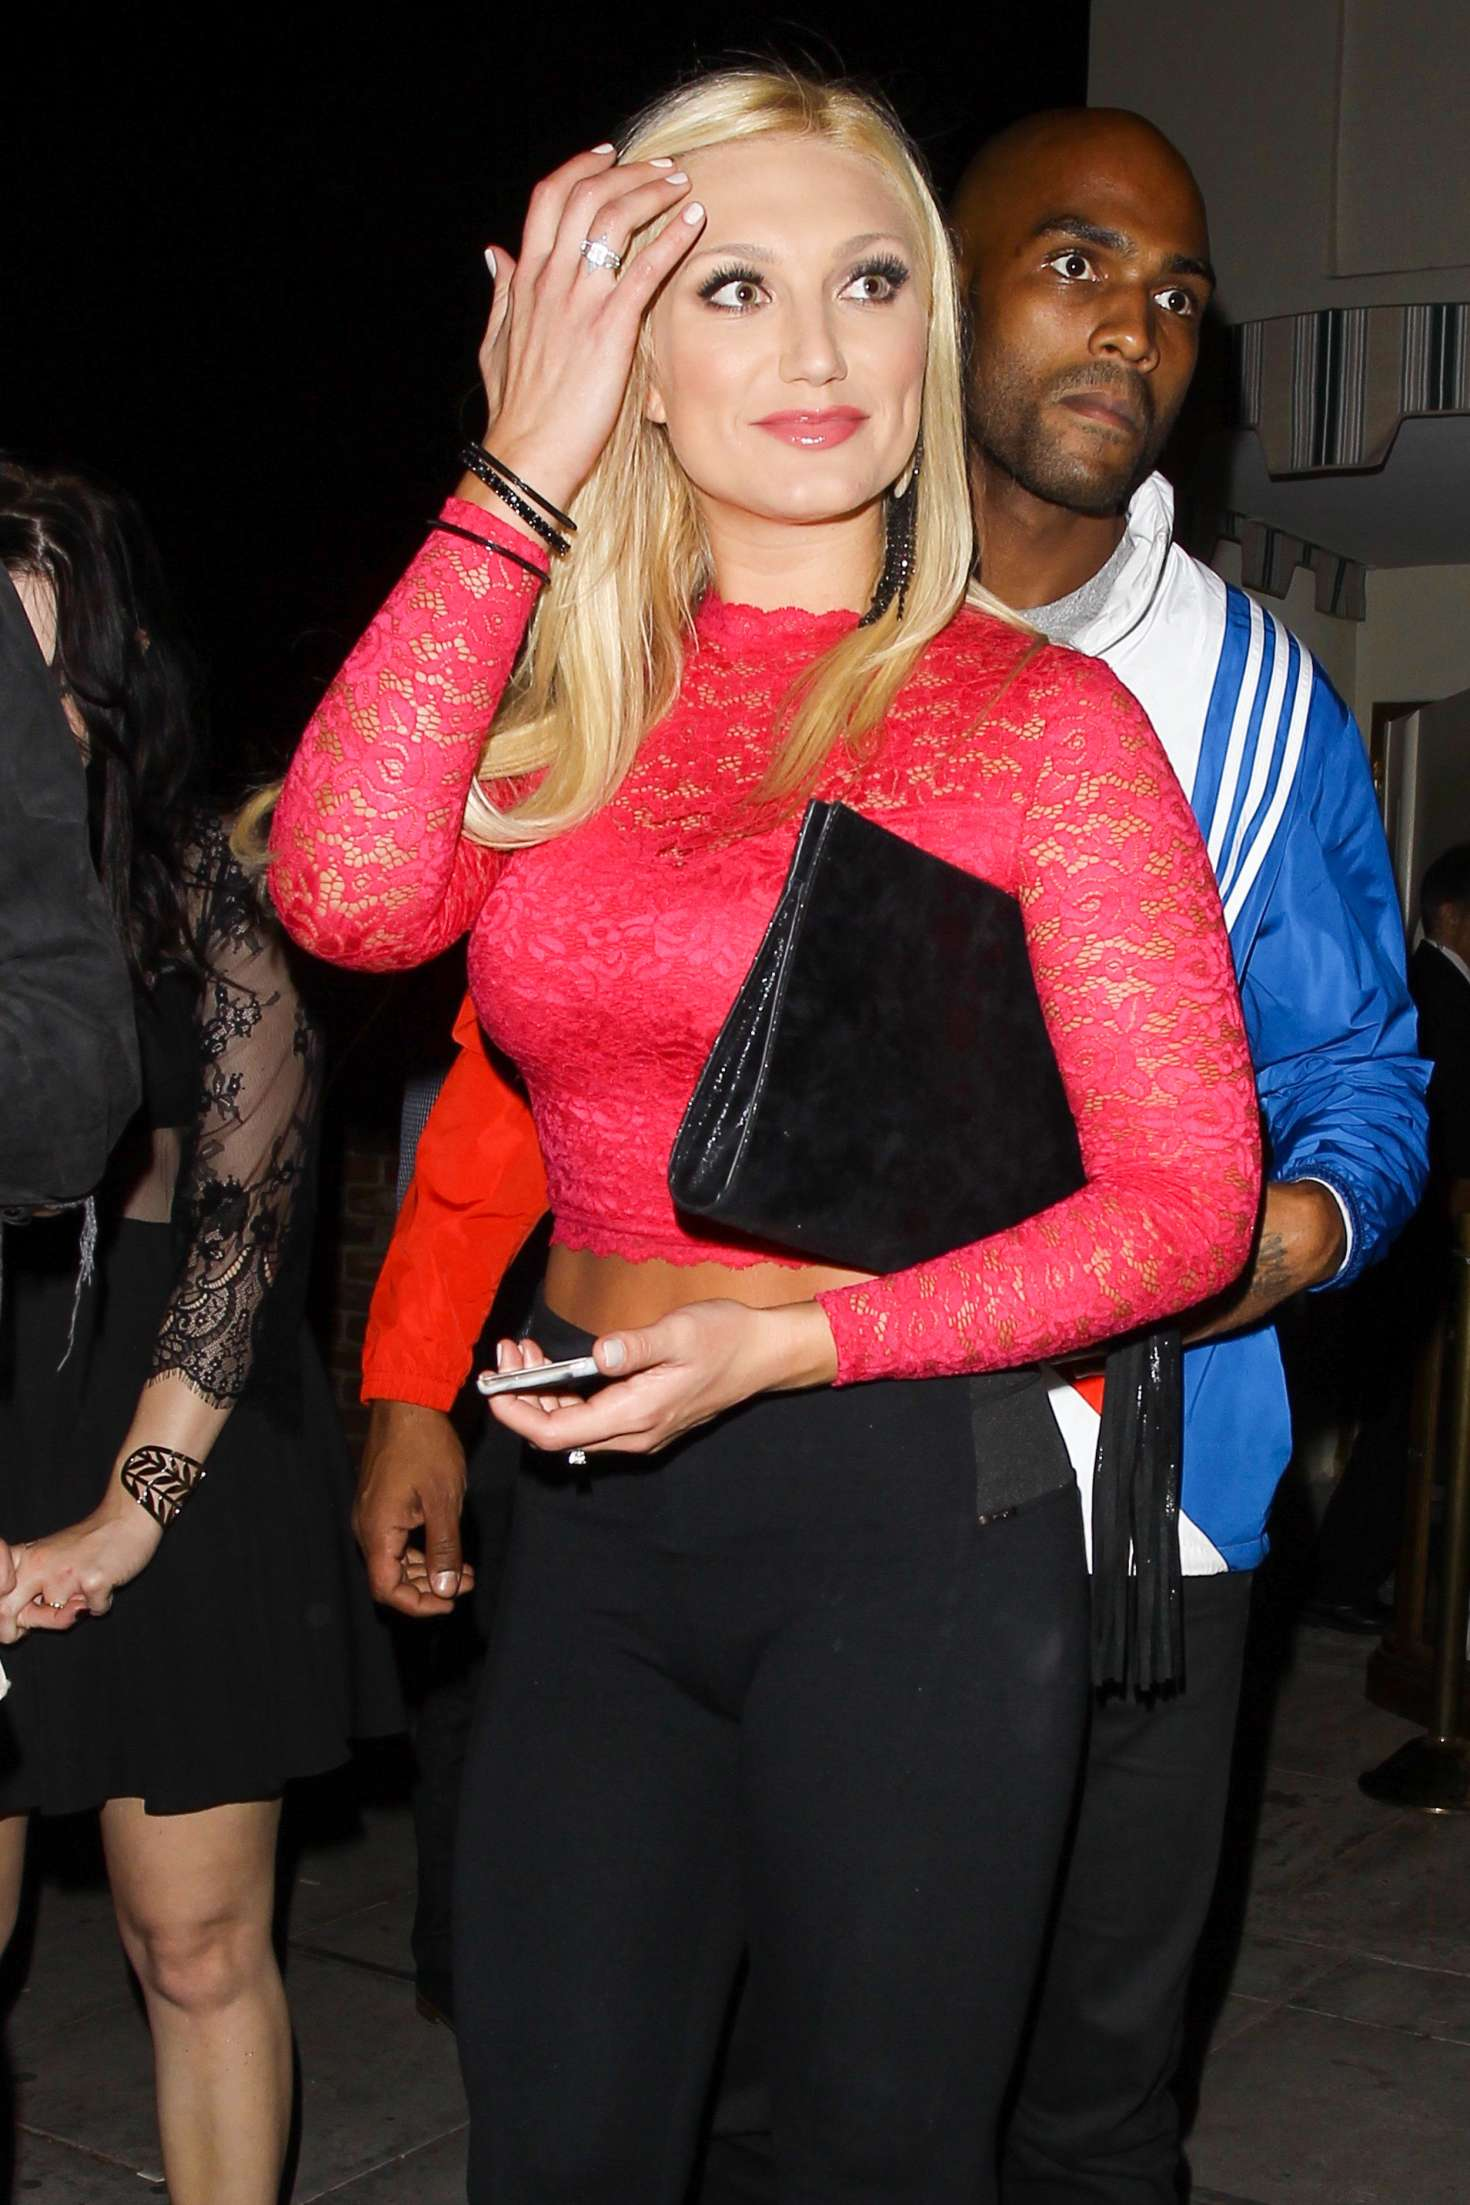 Brooke Hogan at Delilah in West Hollywood